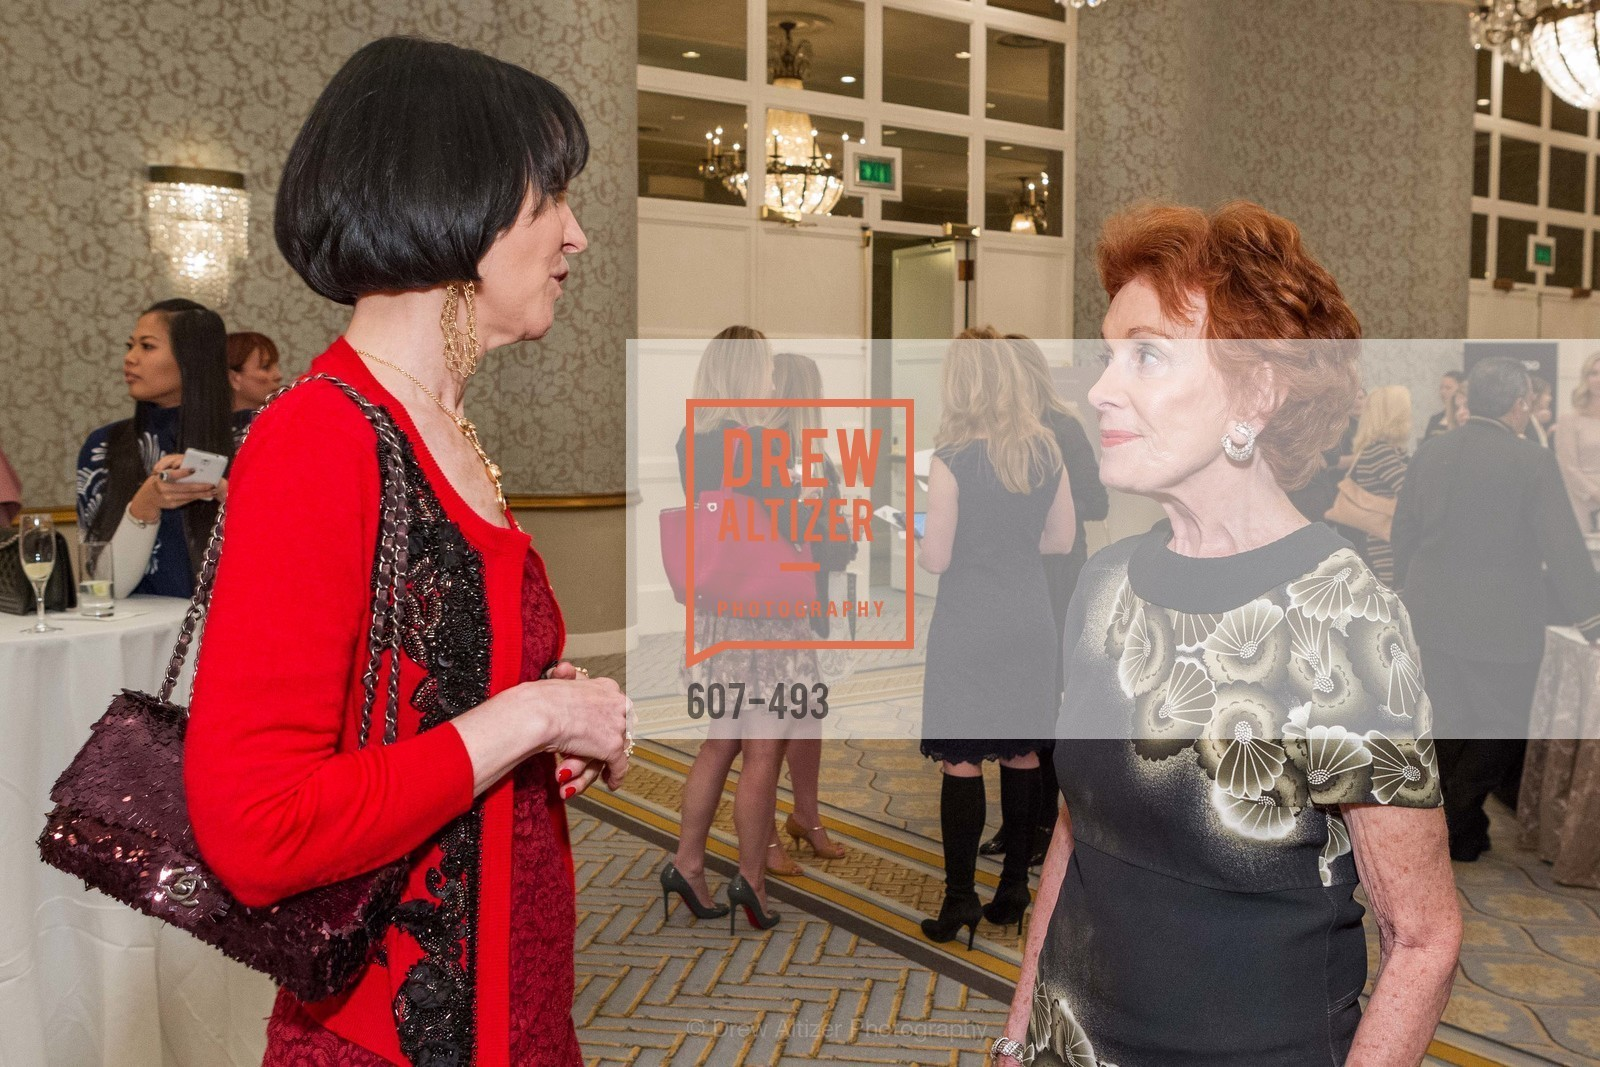 Christine Suppes, Phoebe Cowles, SAN FRANCISCO BALLET AUXULIARY 2014 Fashion Show, US. The Fairmont, April 3rd, 2014,Drew Altizer, Drew Altizer Photography, full-service agency, private events, San Francisco photographer, photographer california